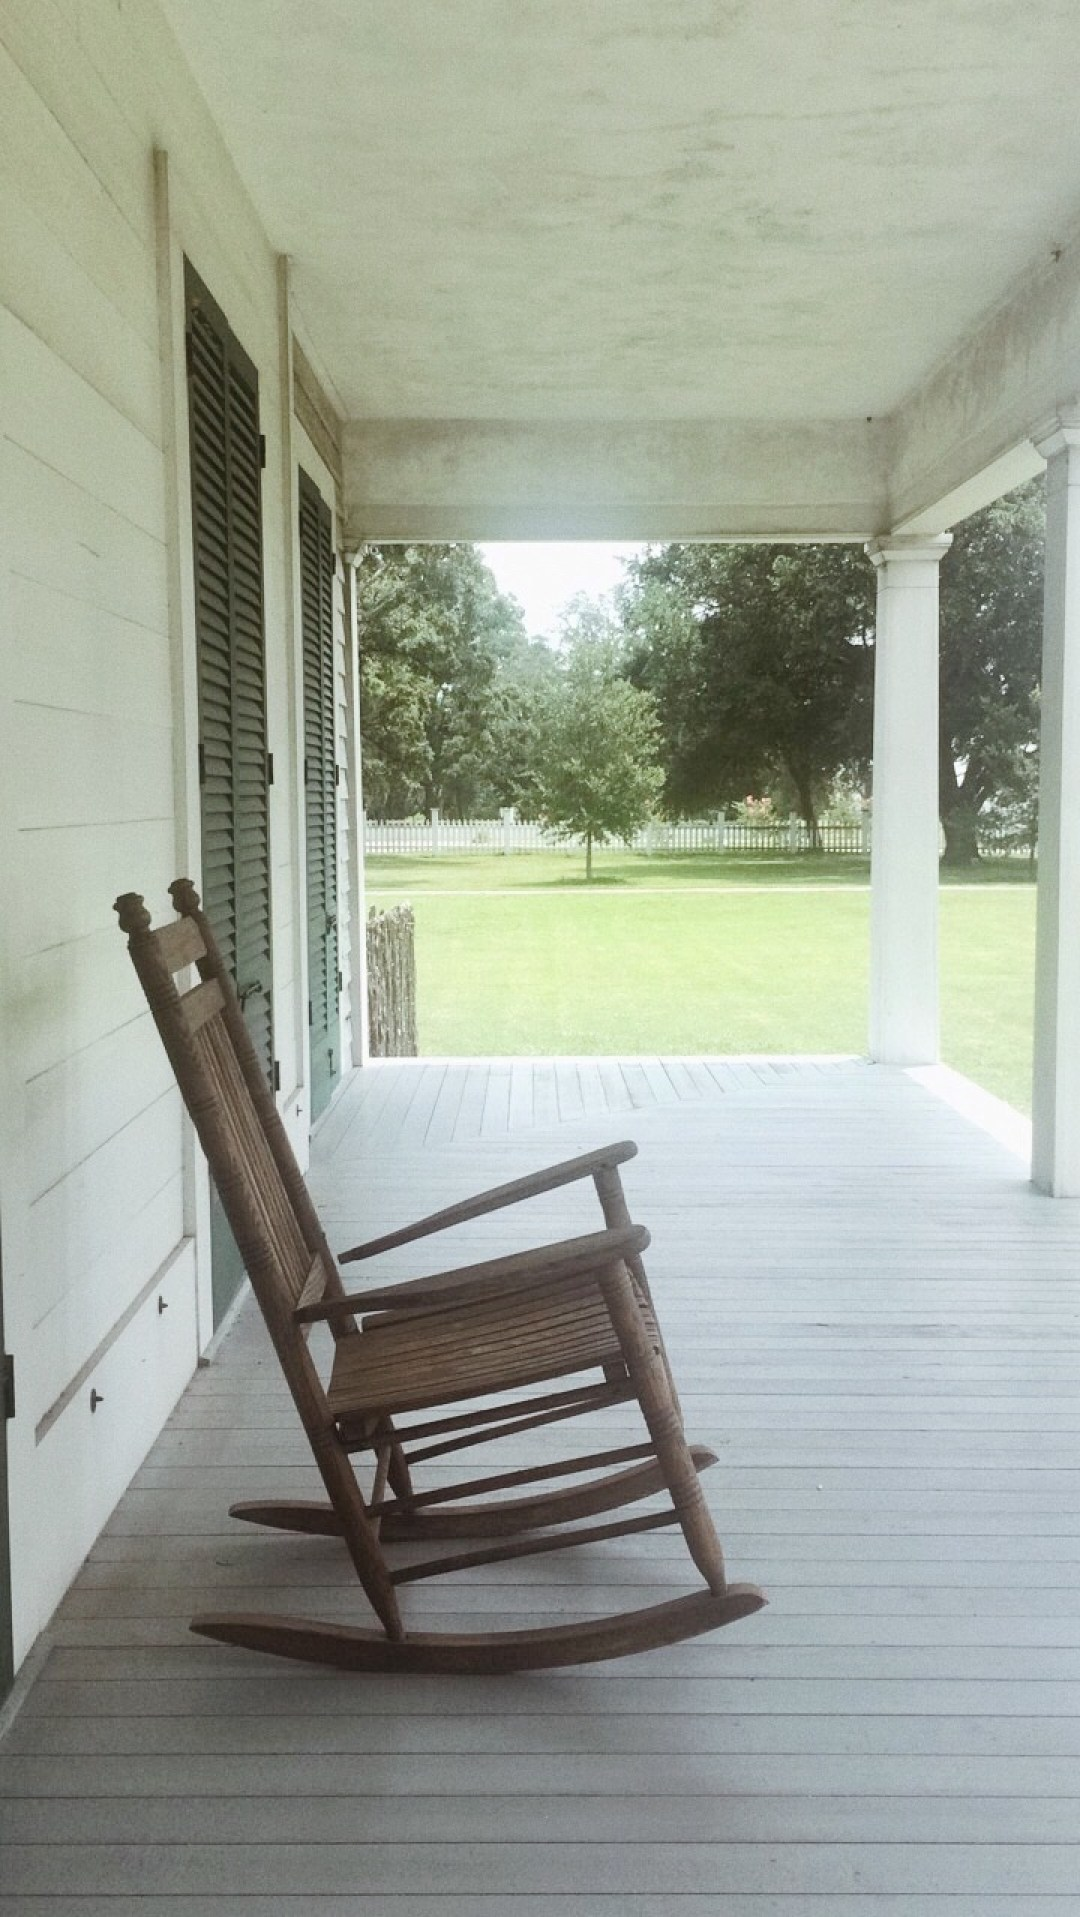 be still and know that I am God, rocking chairs, thinking chairs, labor day weekend, ways to spend time with God, how do you know when God is speaking to me, how do I know if it is God, God moments,